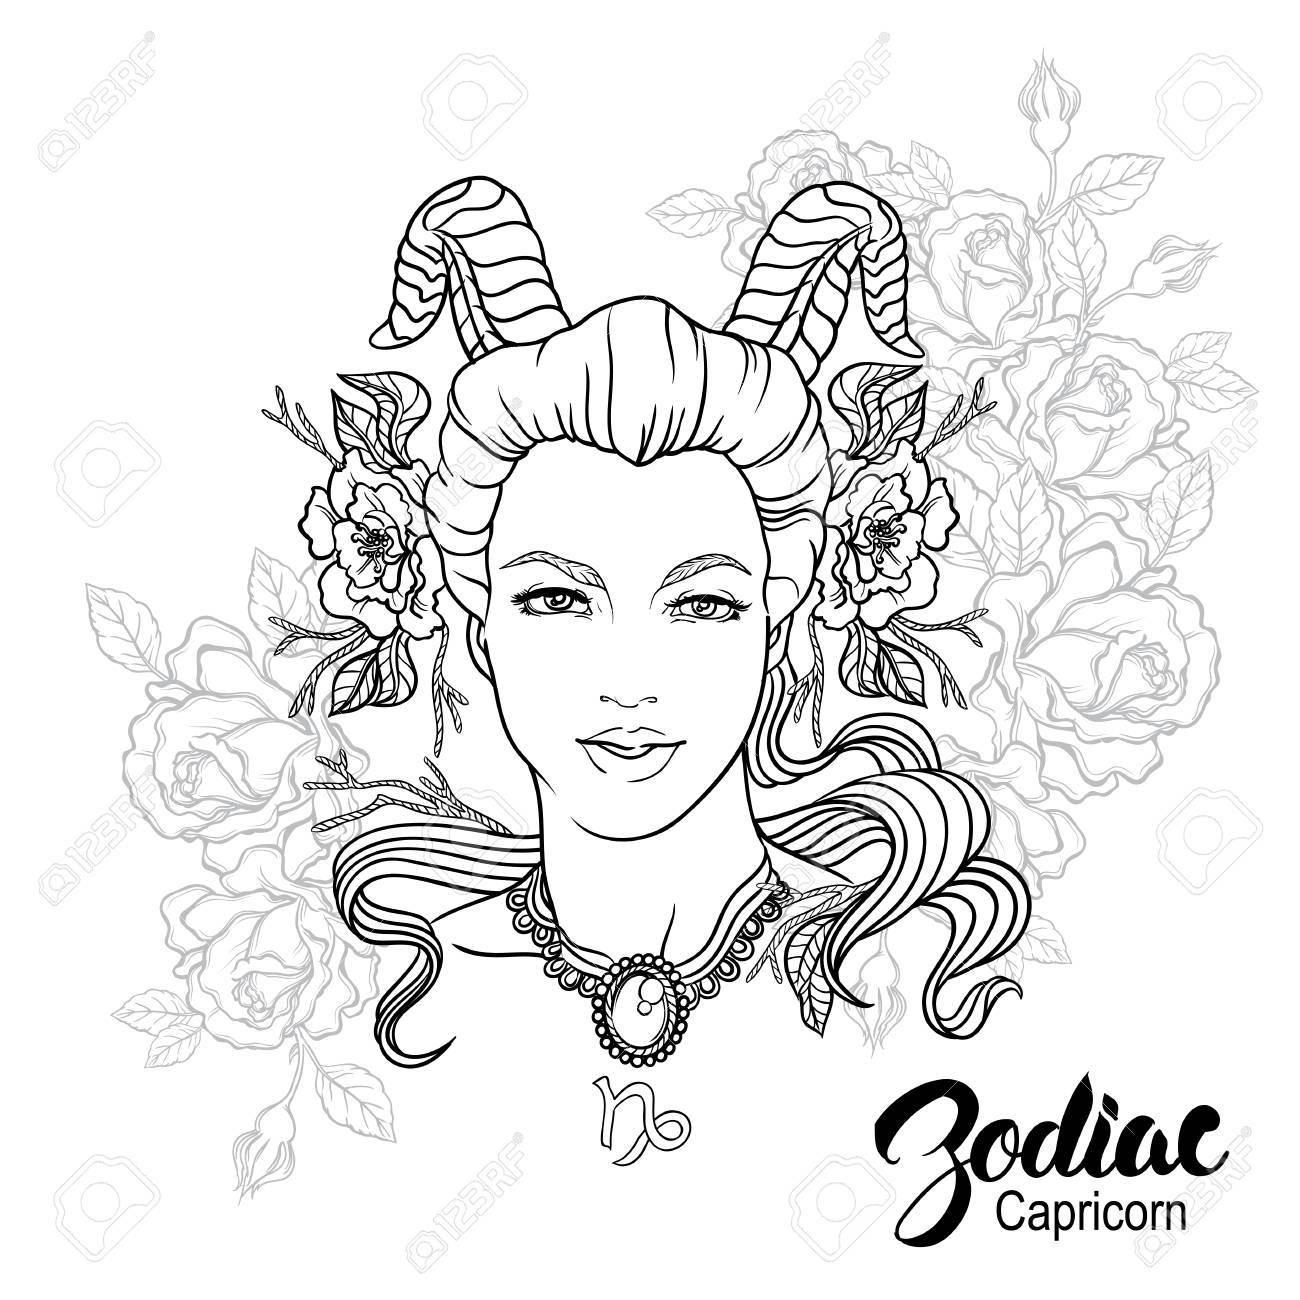 capricorn coloring pages.html